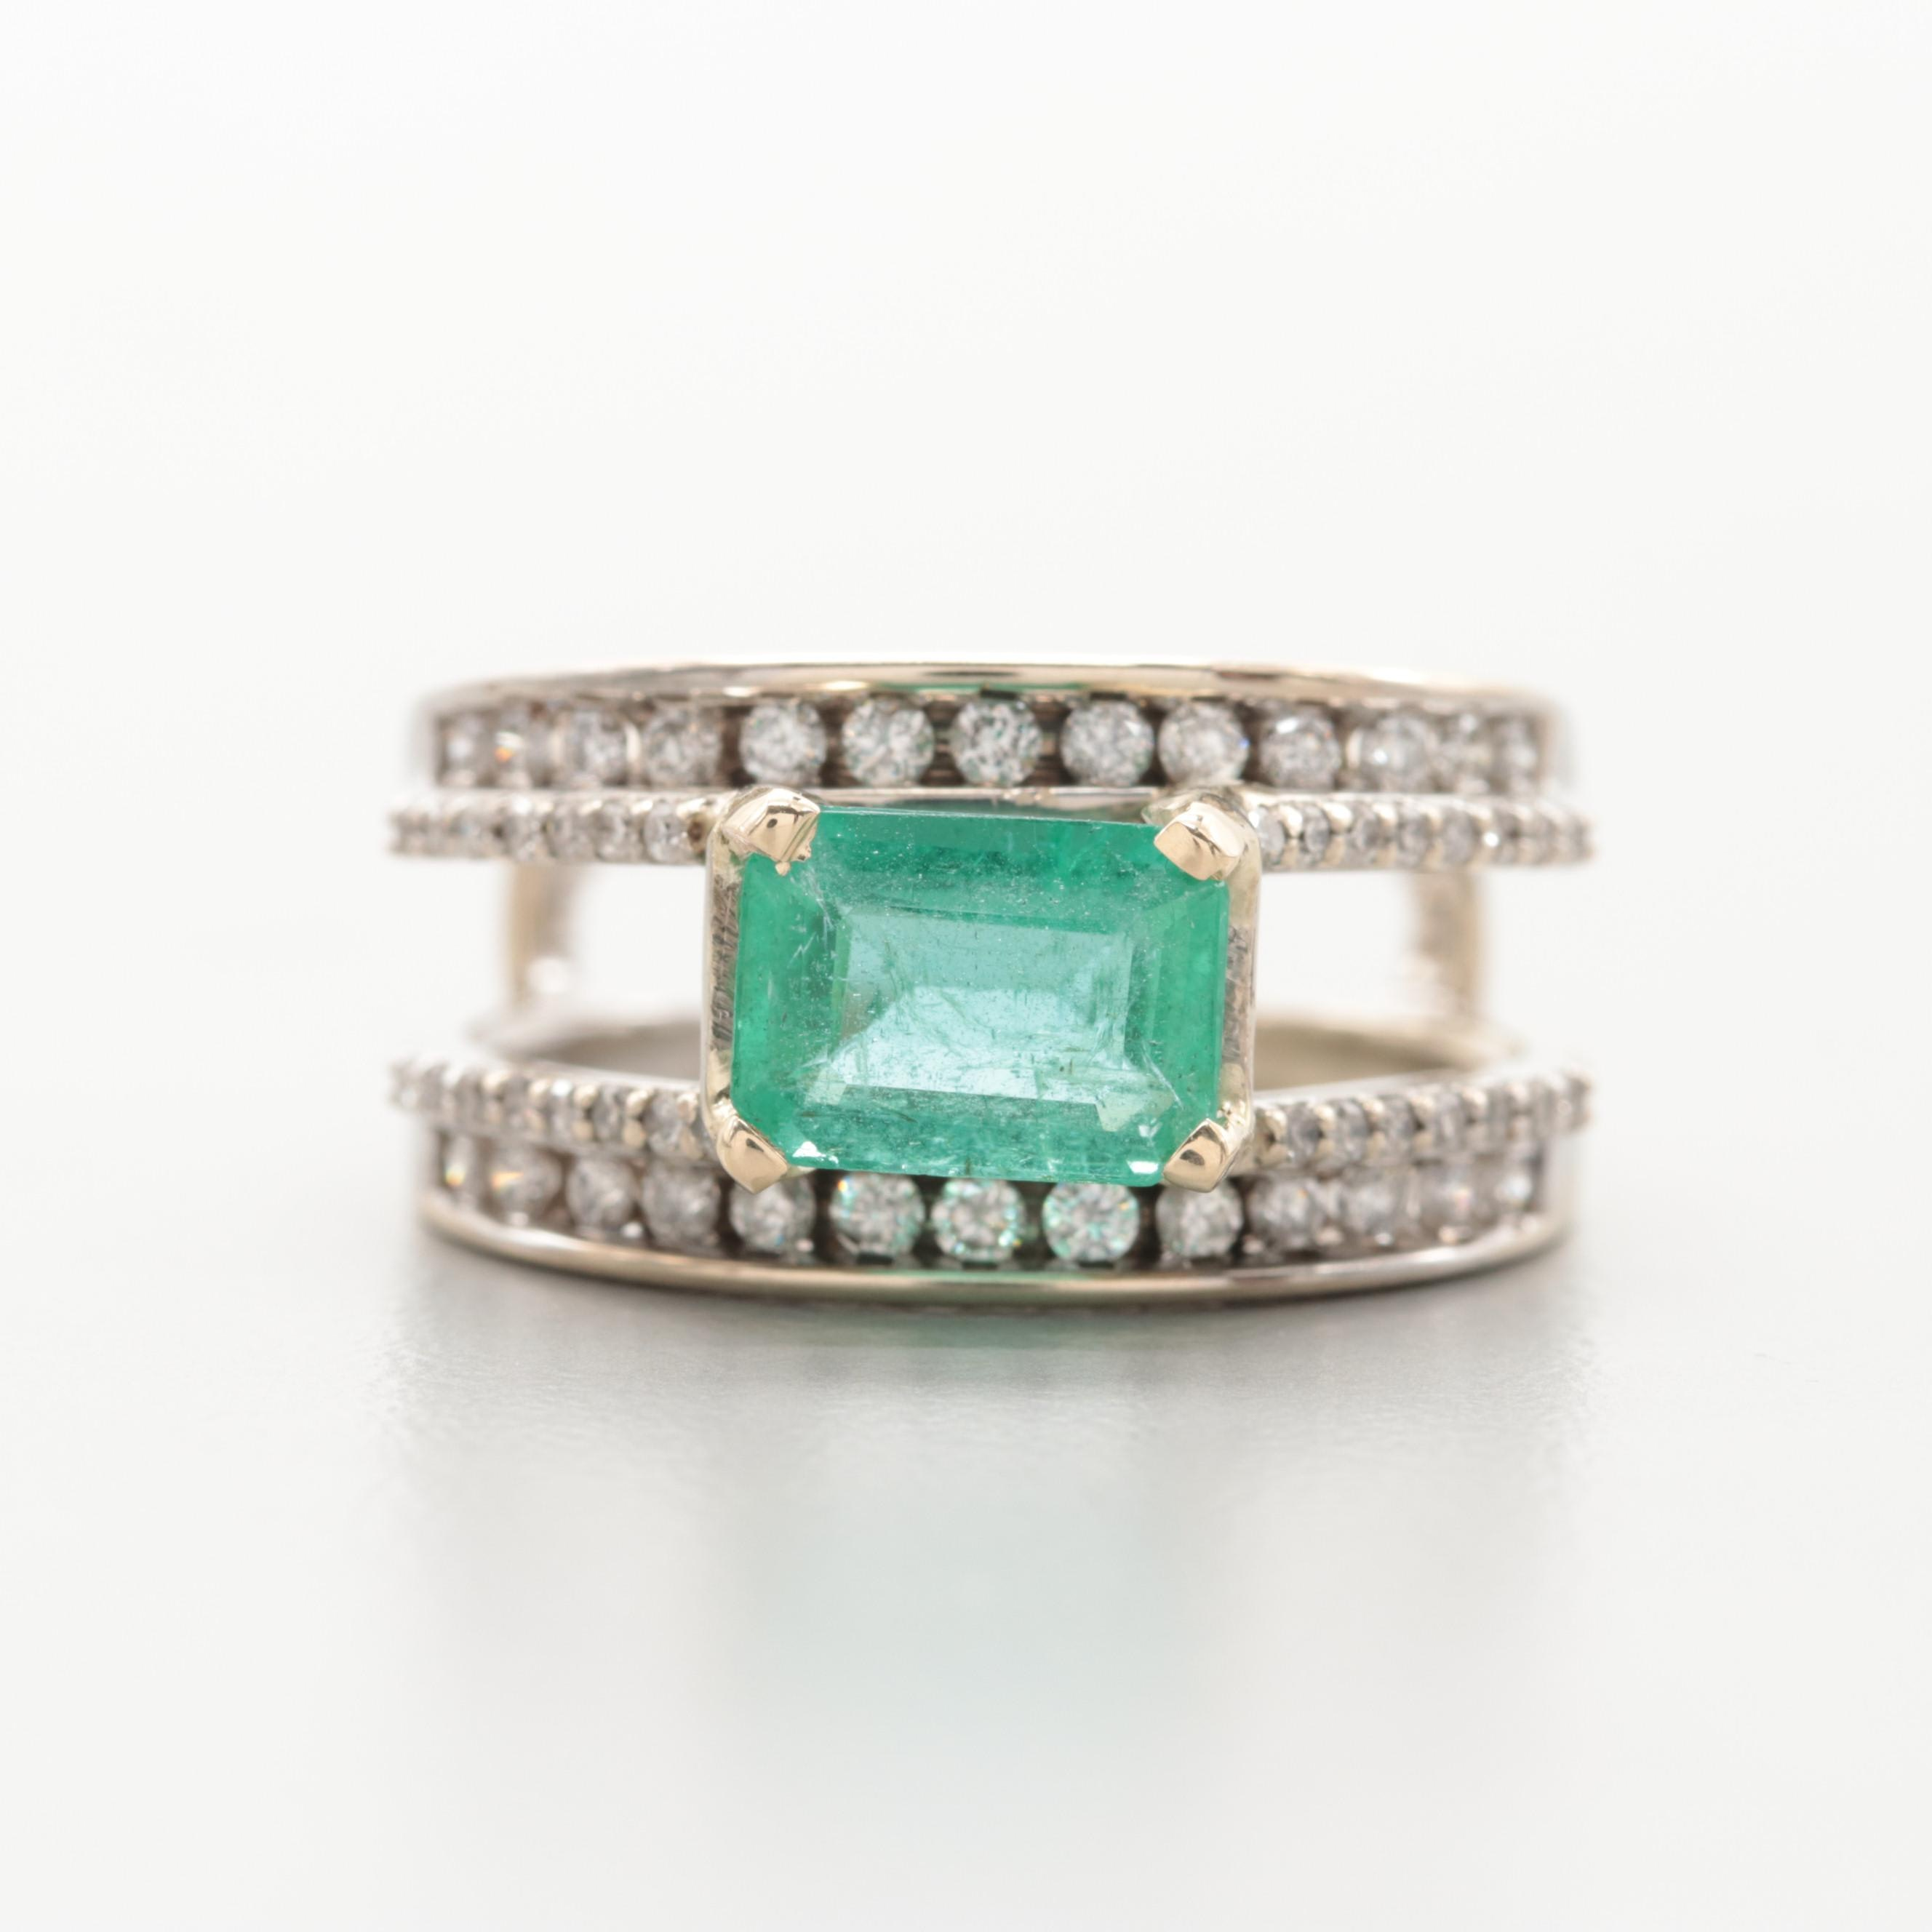 14K White Gold 1.10 CT Emerald and Diamond Ring